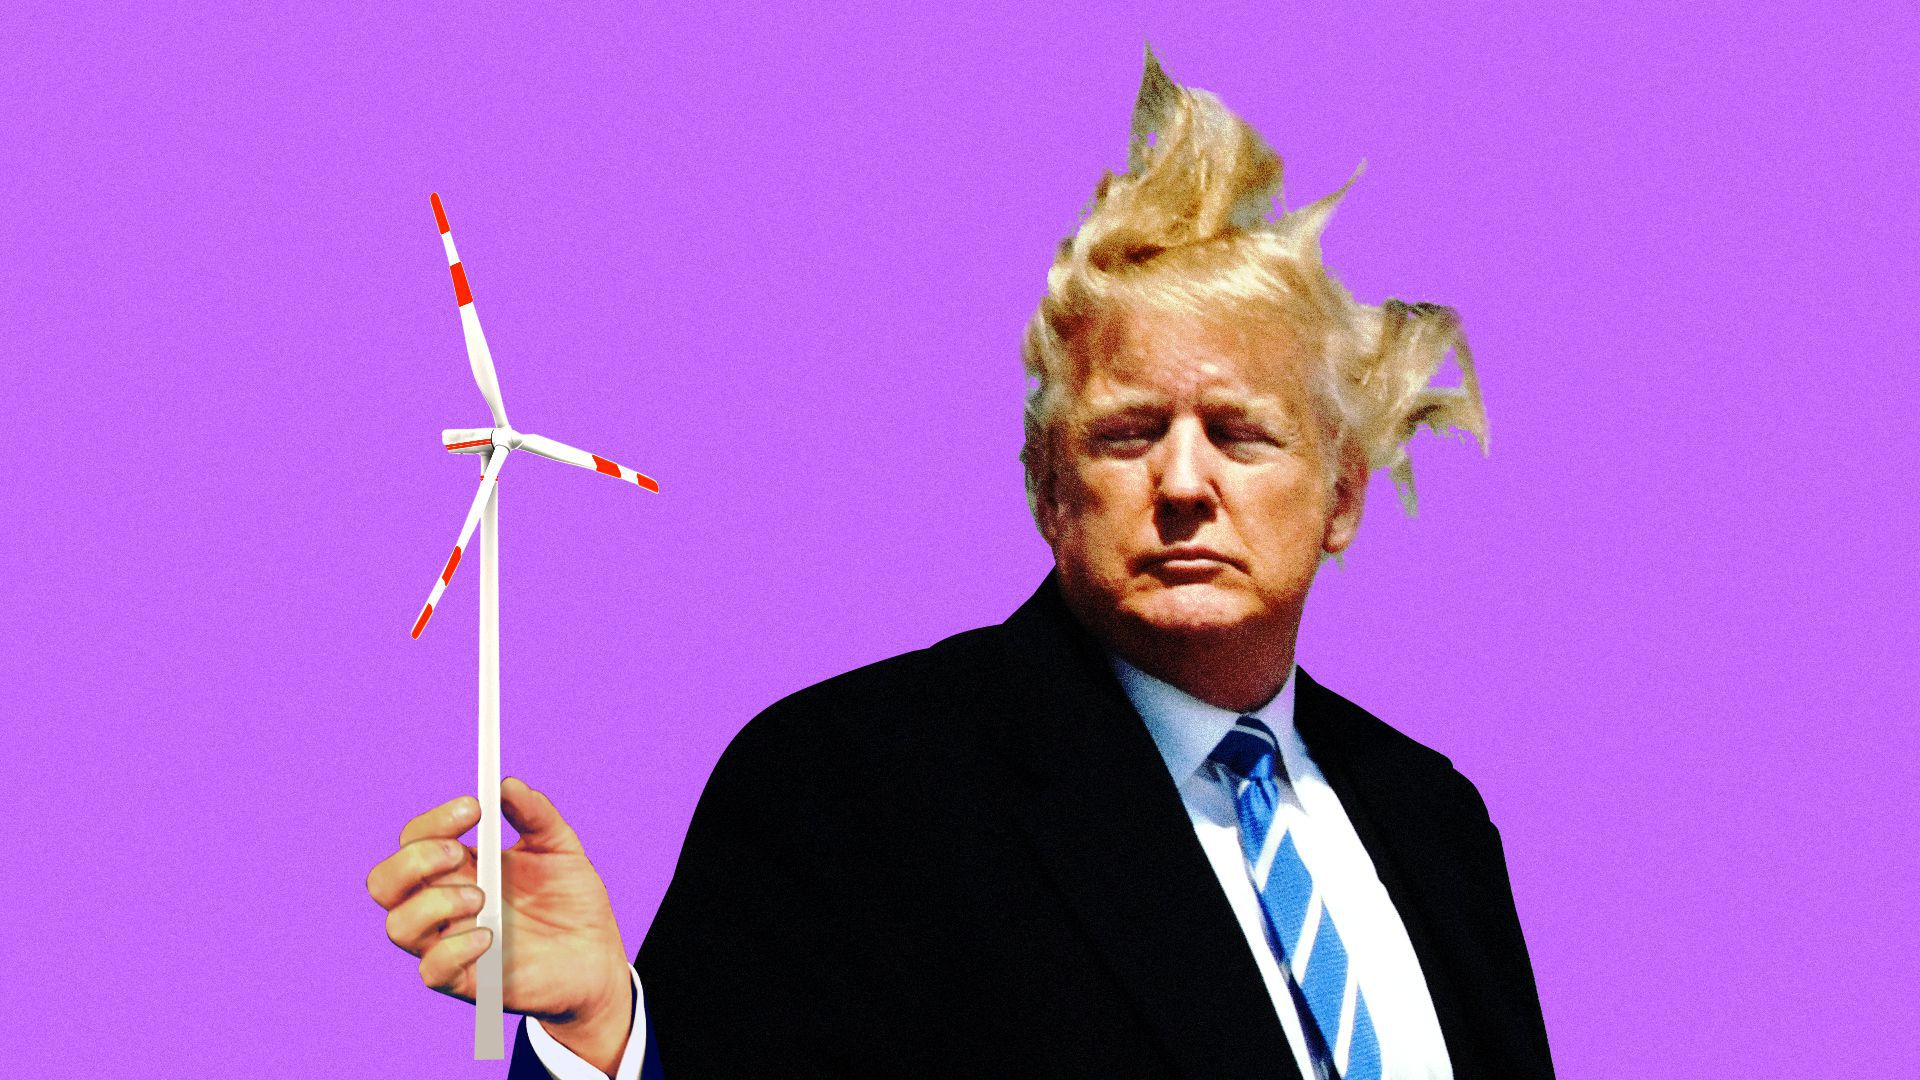 Illustration for story on Trump's energy policy